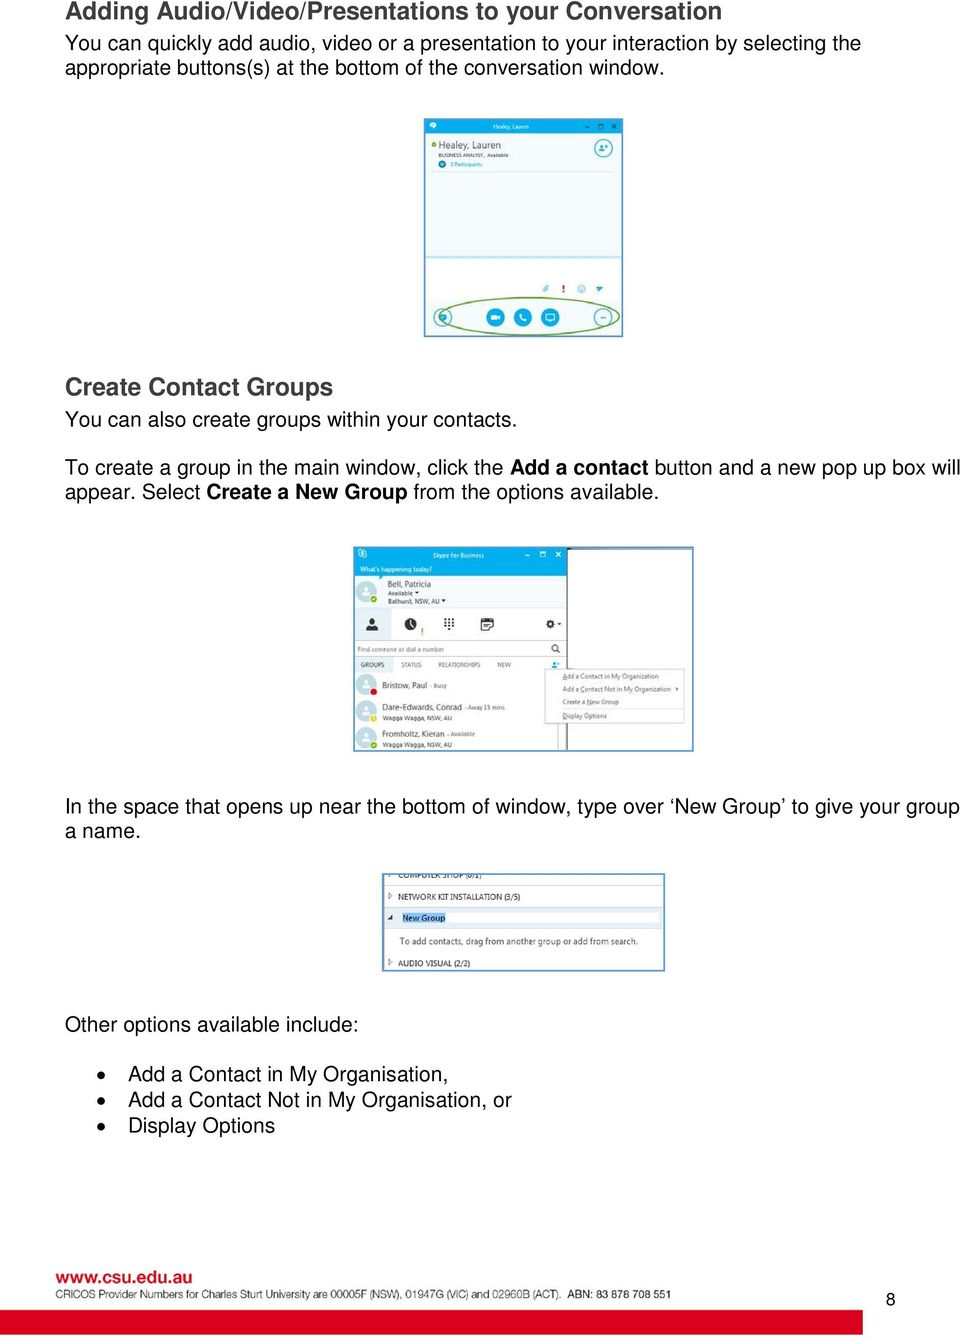 To create a group in the main window, click the Add a contact button and a new pop up box will appear. Select Create a New Group from the options available.